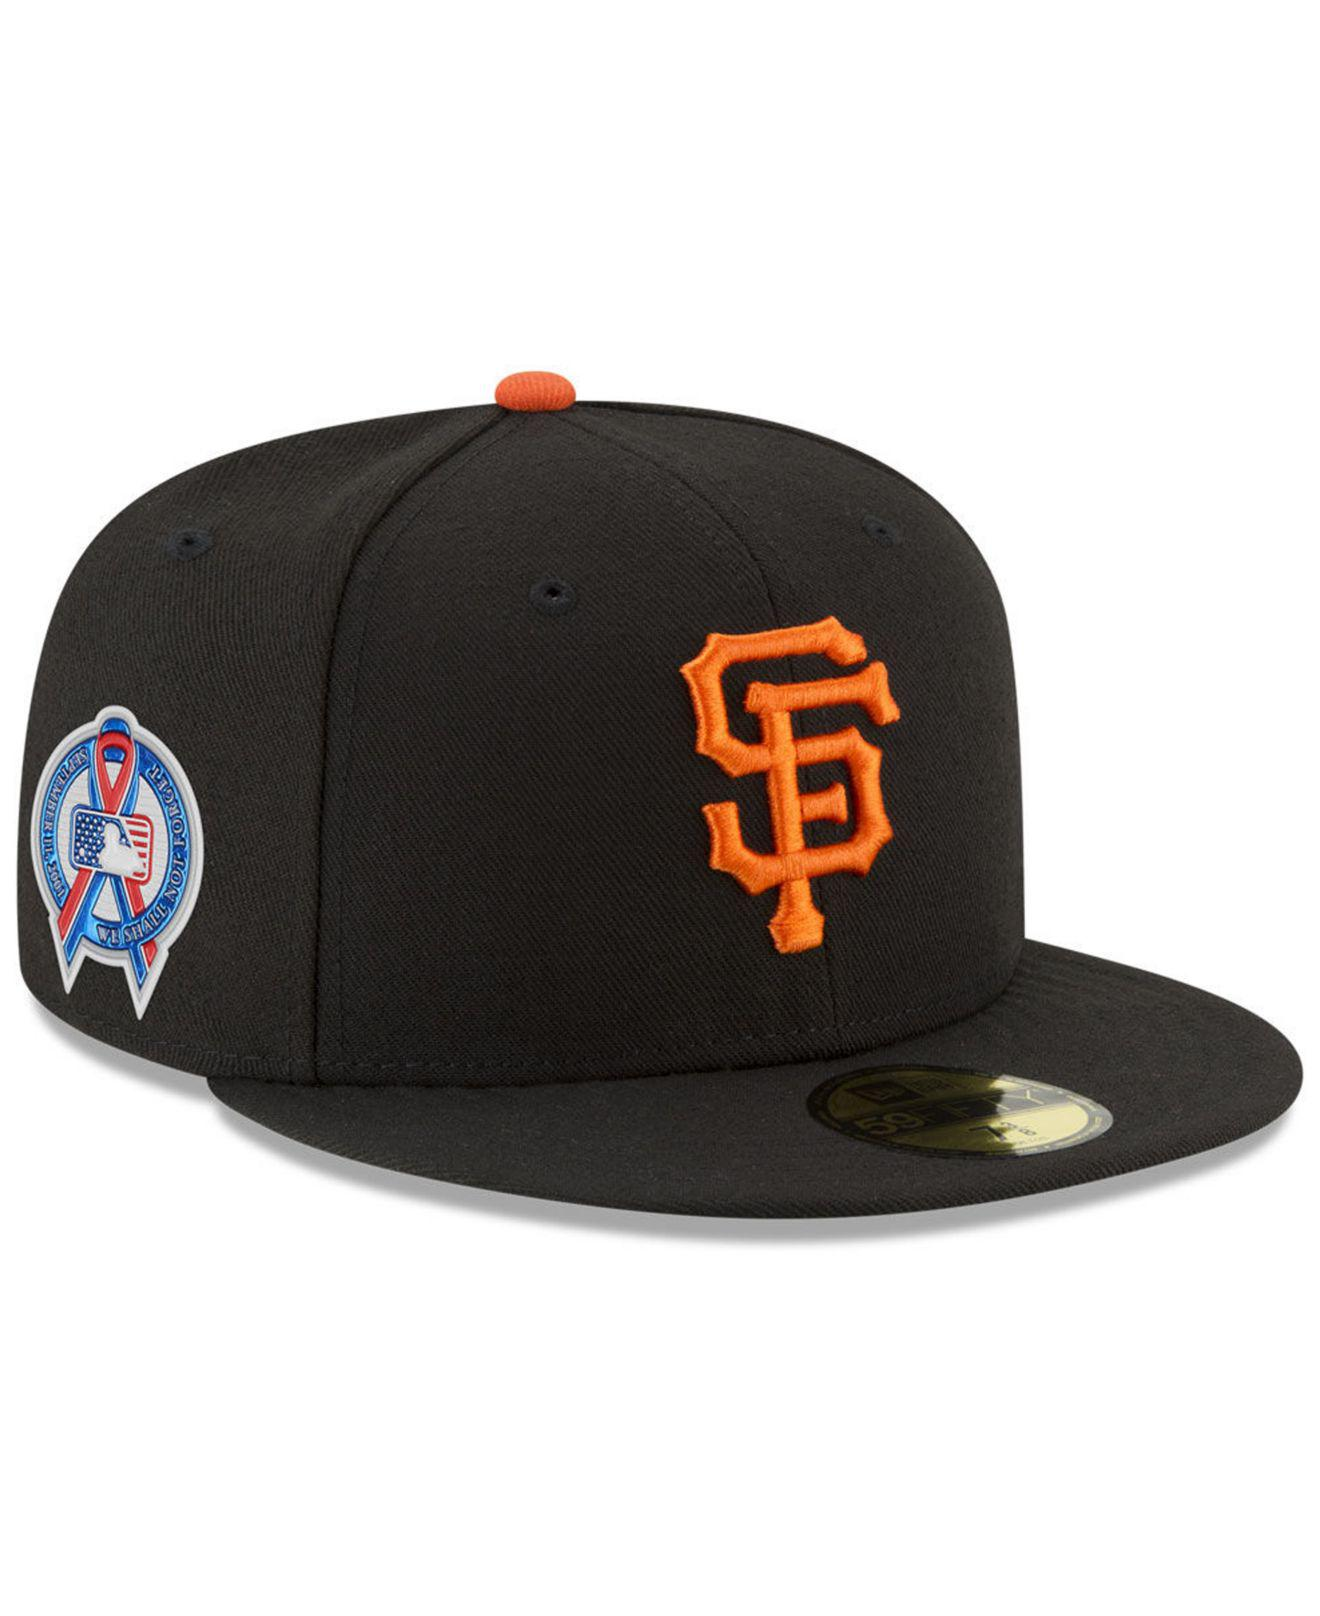 designer fashion a650e d4b79 KTZ. Men s Black San Francisco Giants 150th Anniversary 59fifty-fitted Cap